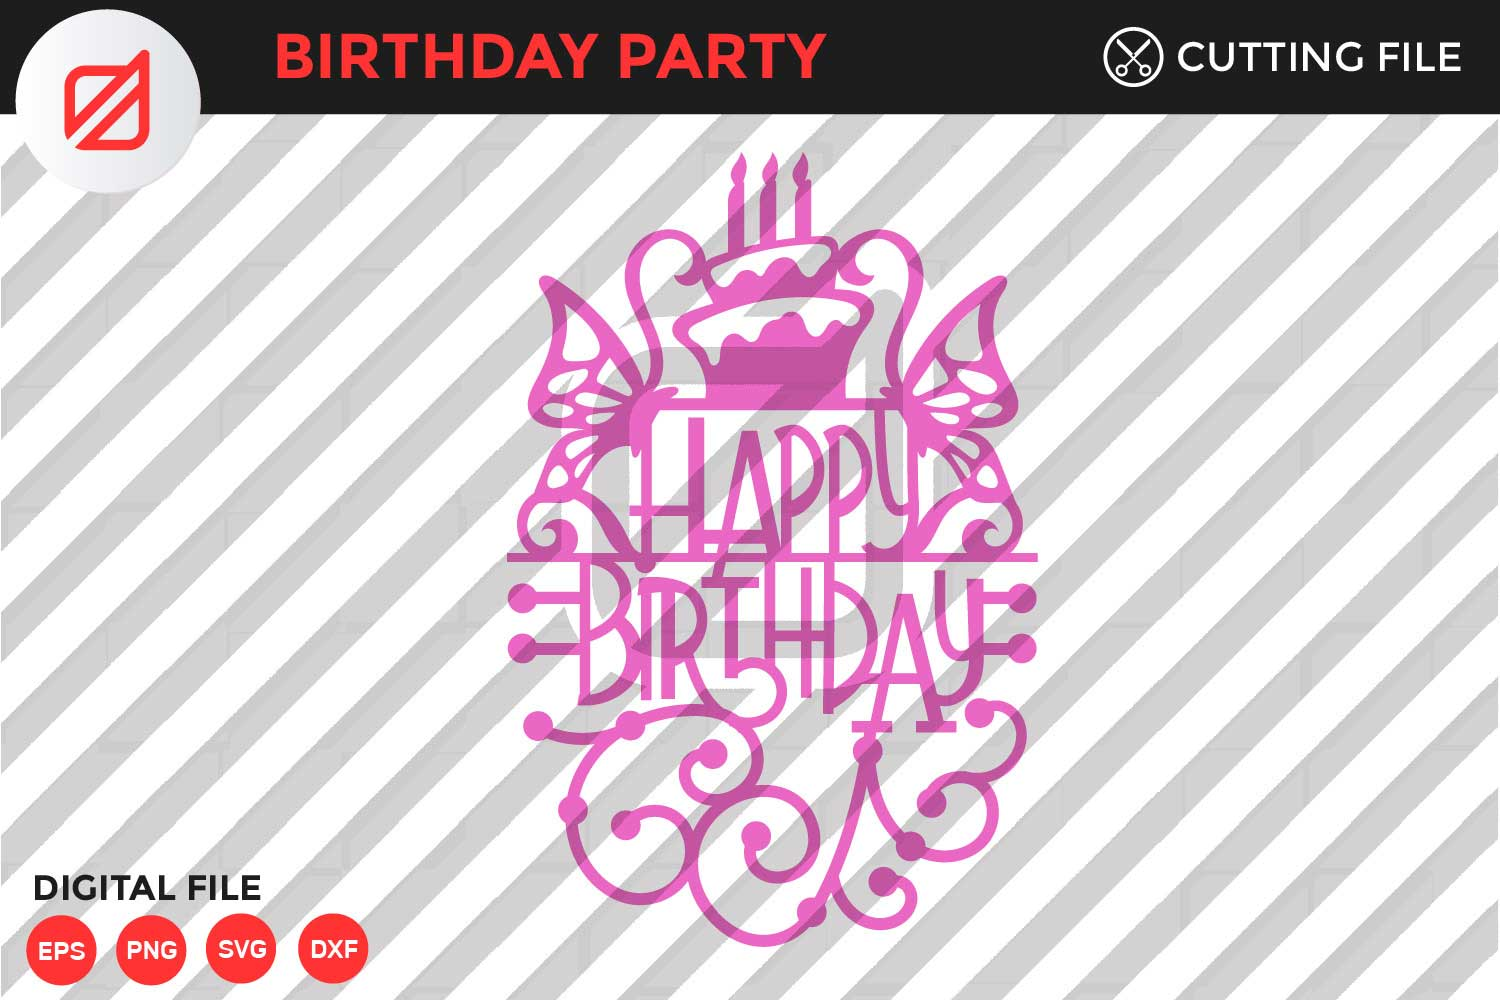 Download Free Birthday Party Cutting File V1 Graphic By Illusatrian Creative for Cricut Explore, Silhouette and other cutting machines.